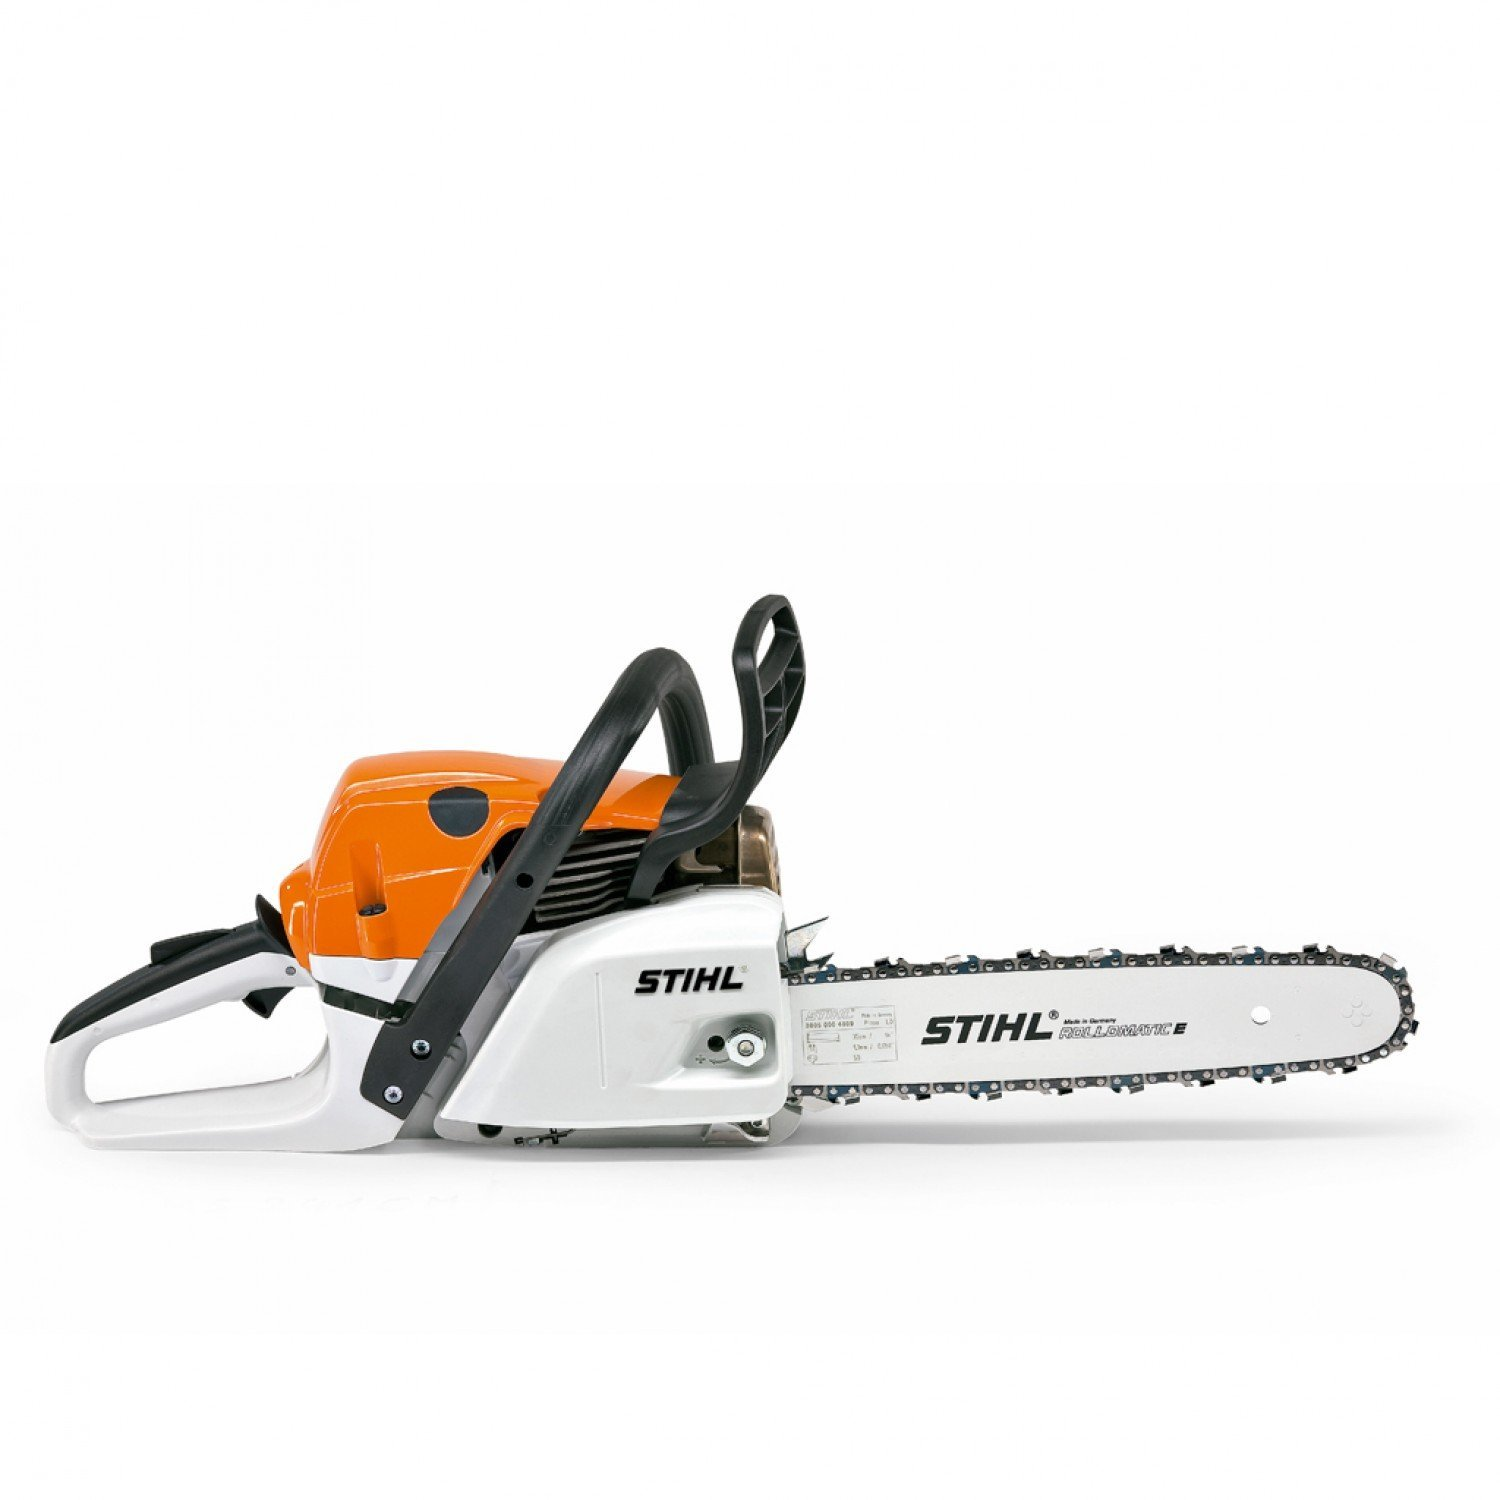 stihl ms231 chainsaw 16 douglas forest and garden. Black Bedroom Furniture Sets. Home Design Ideas